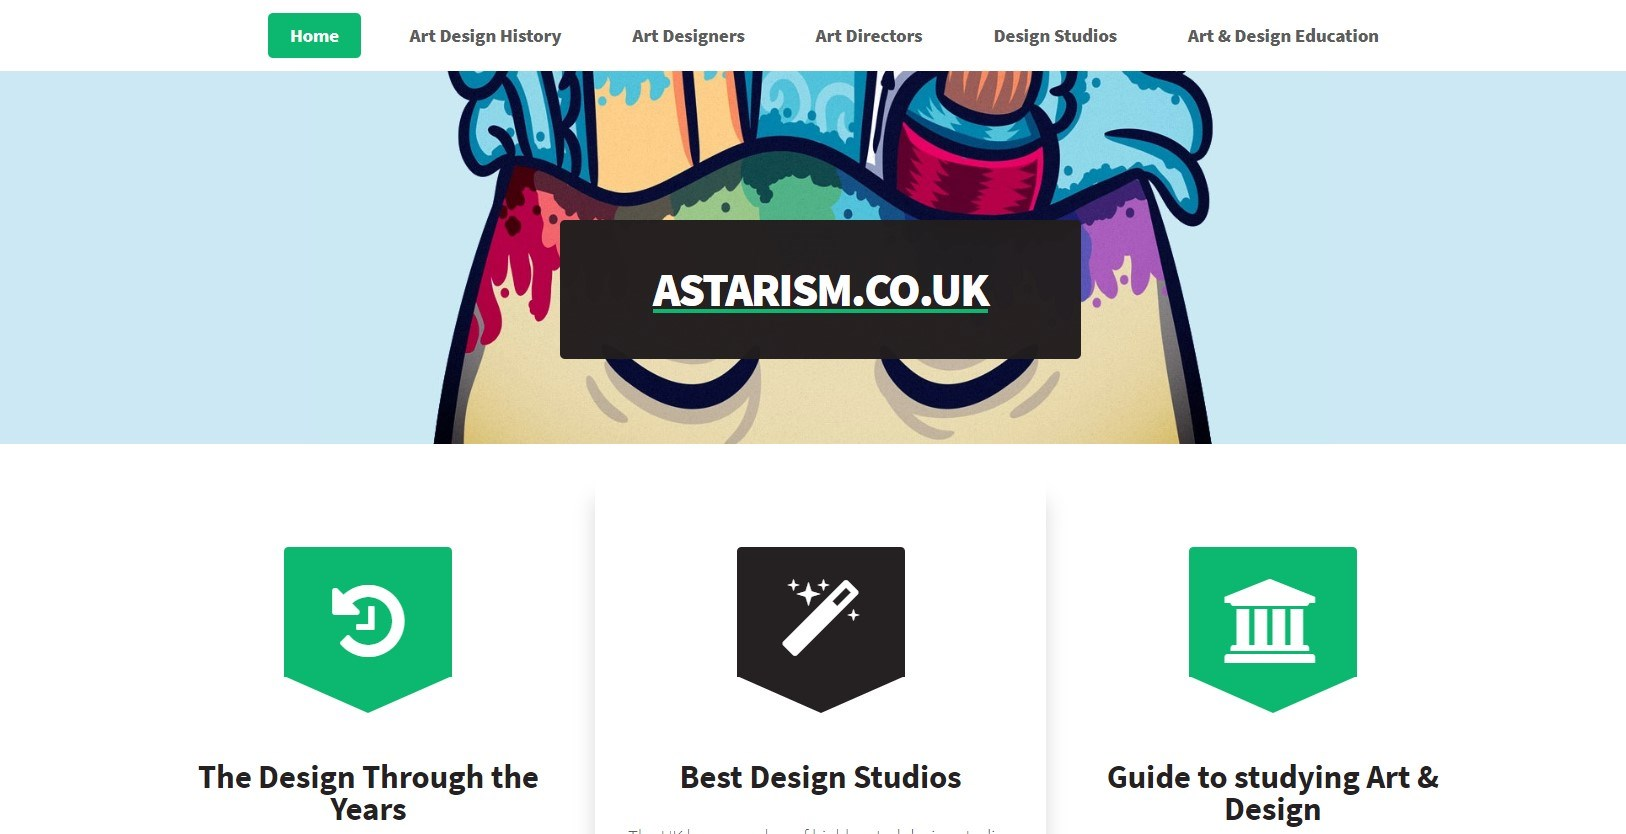 Astarism.co.uk landing page